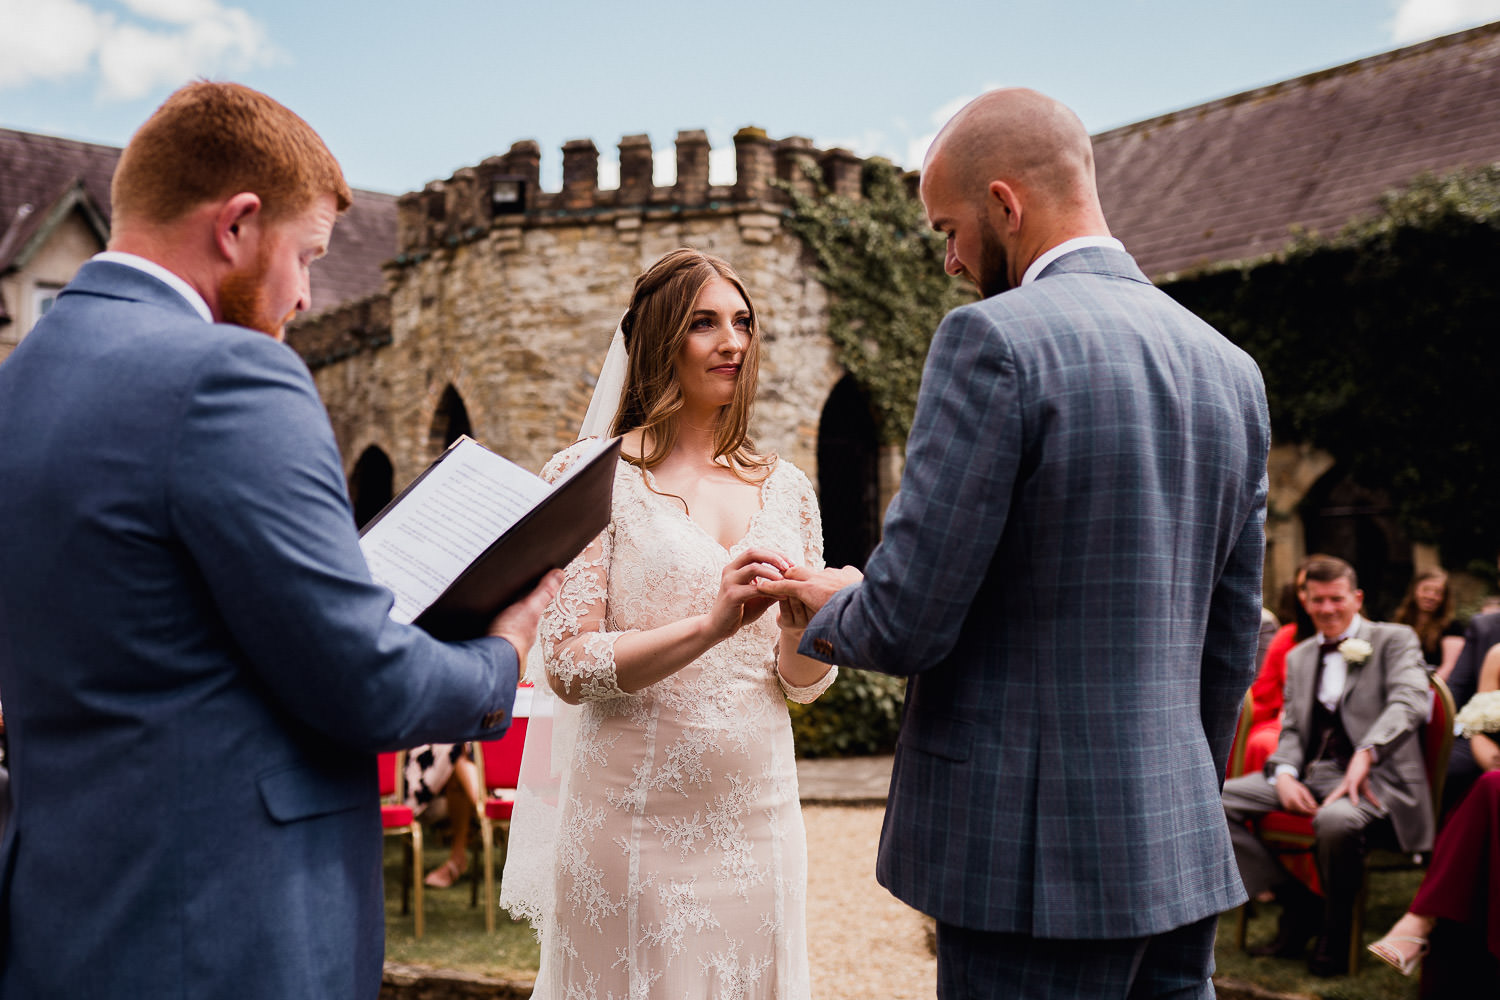 bride and groom exchange vows during wedding ceremony